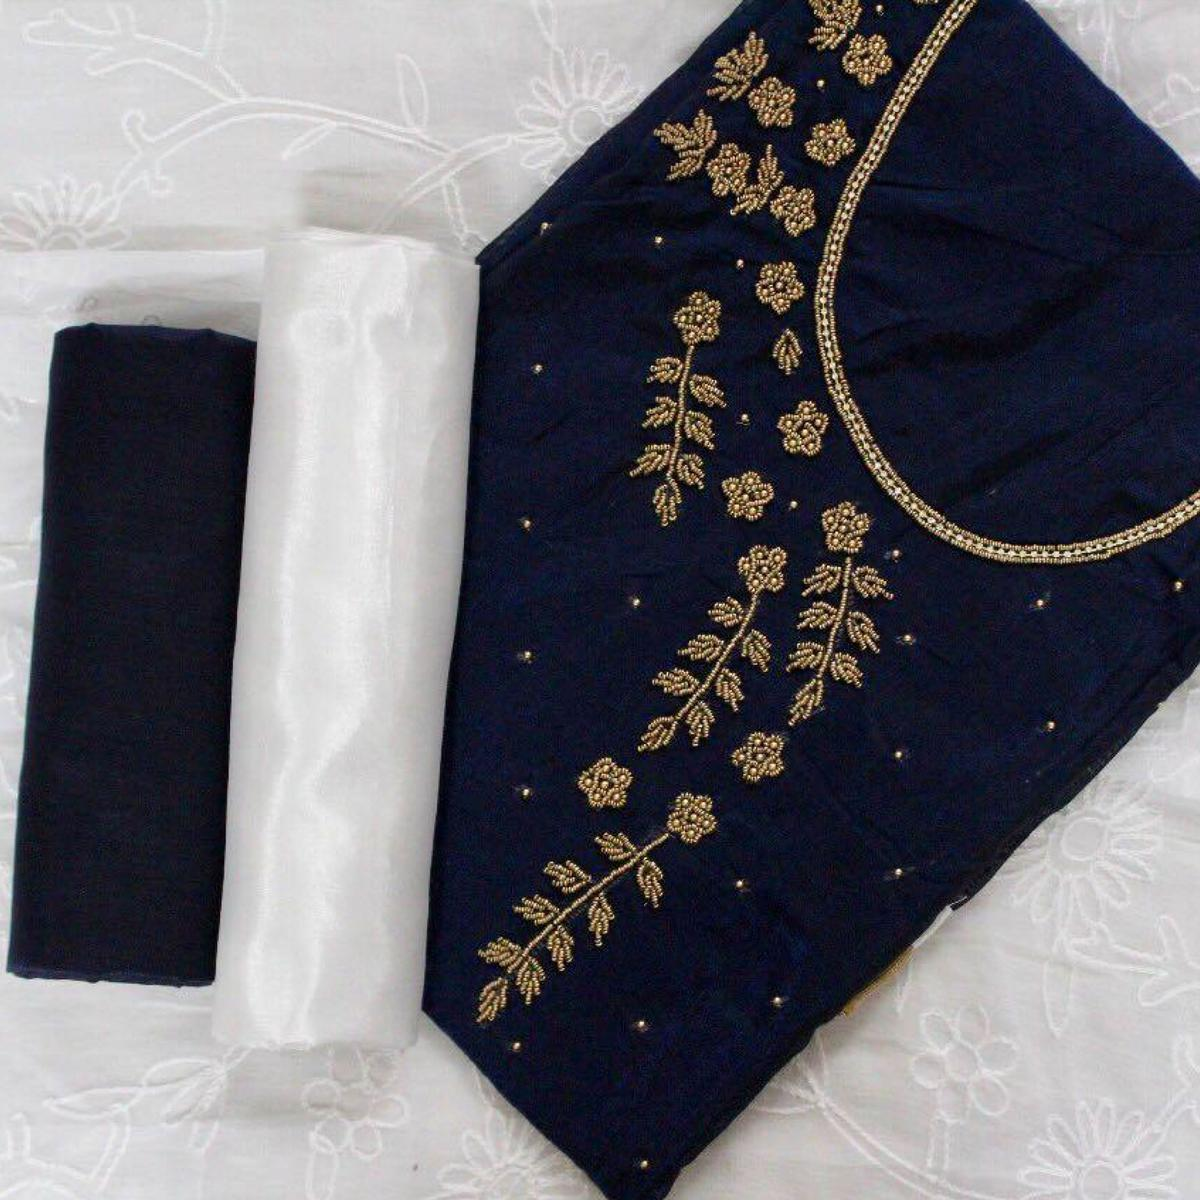 Opulent Navy Blue-White Colored Designer Chanderi Silk Dress Material